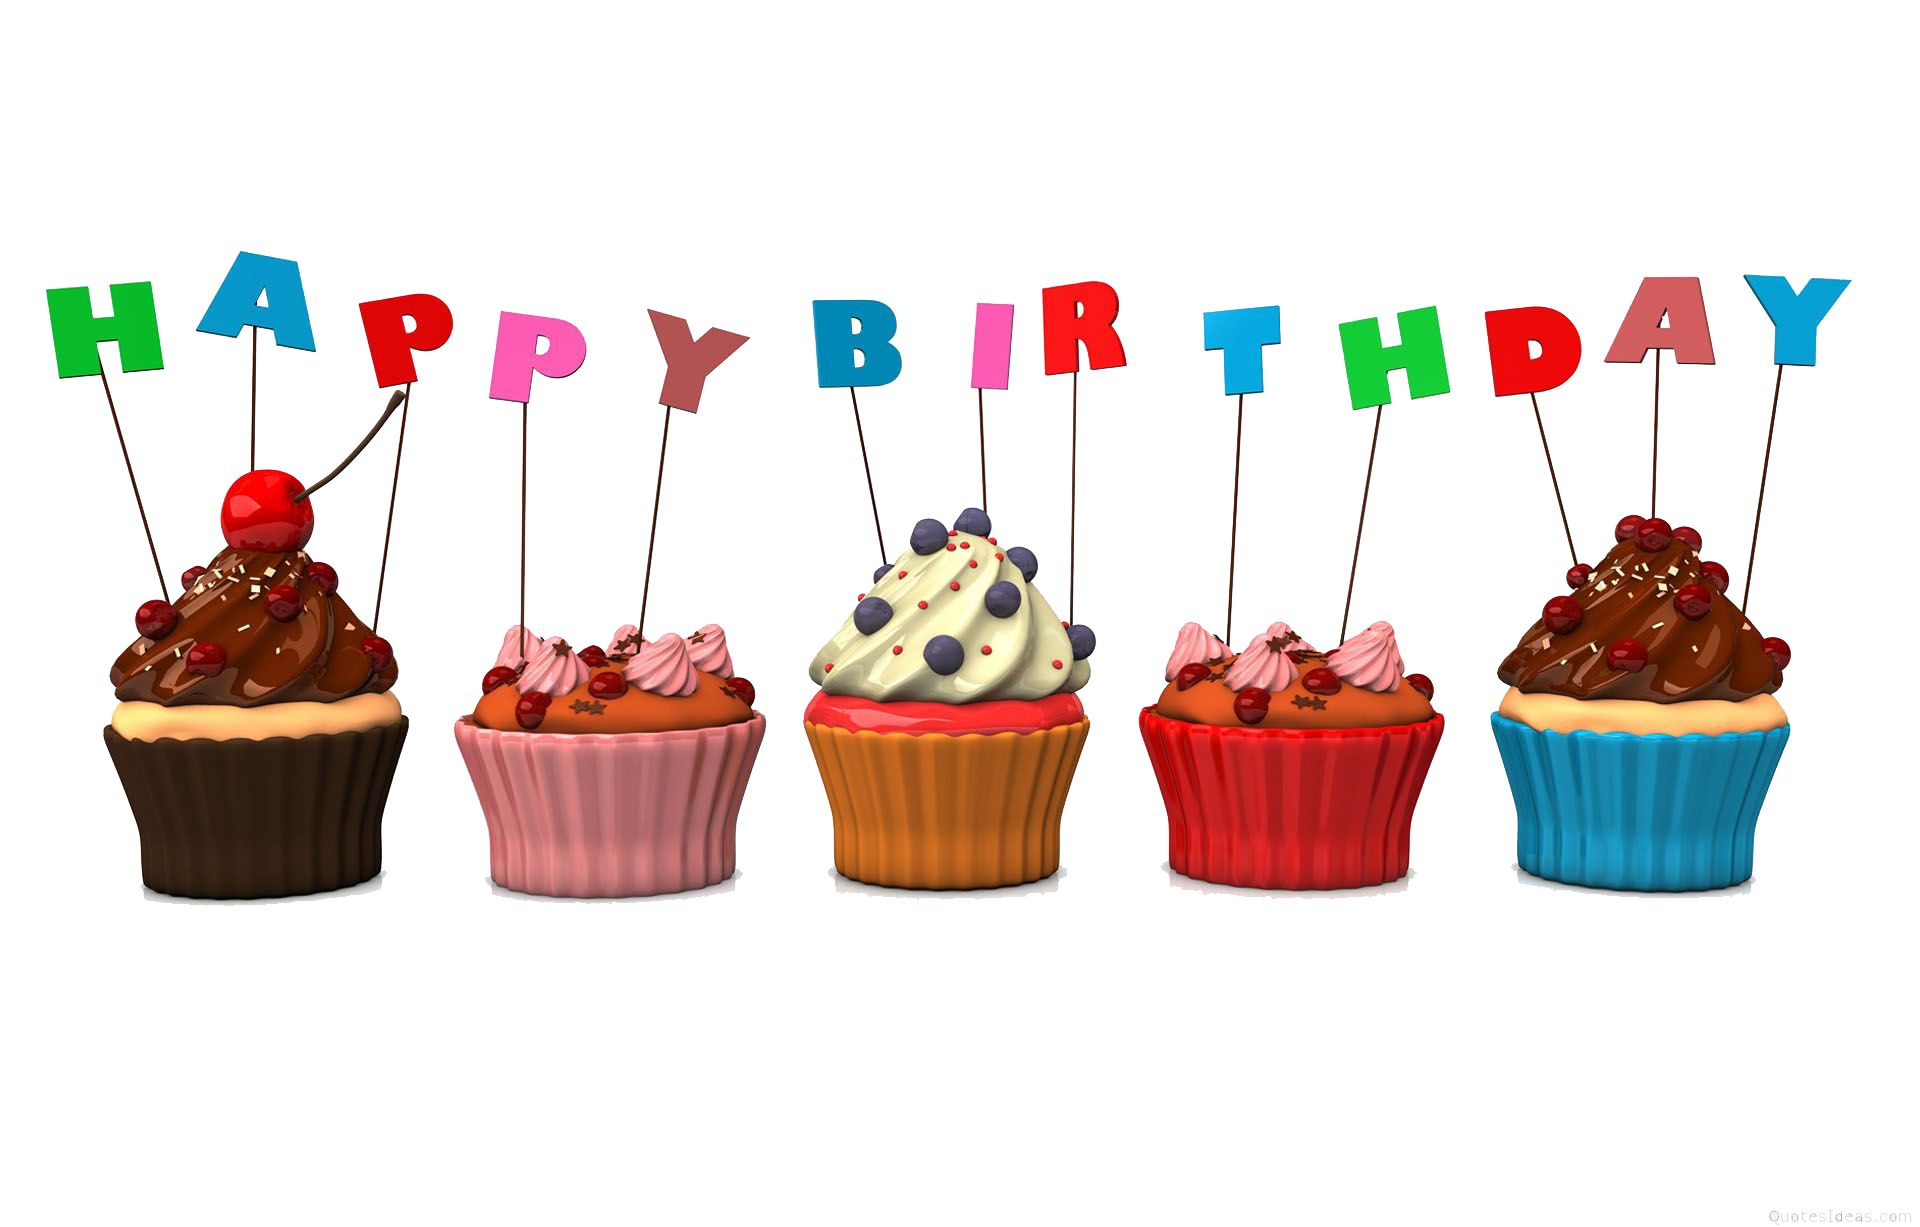 download birthday cake free png photo images and clipart  freepngimg, Beautiful flower